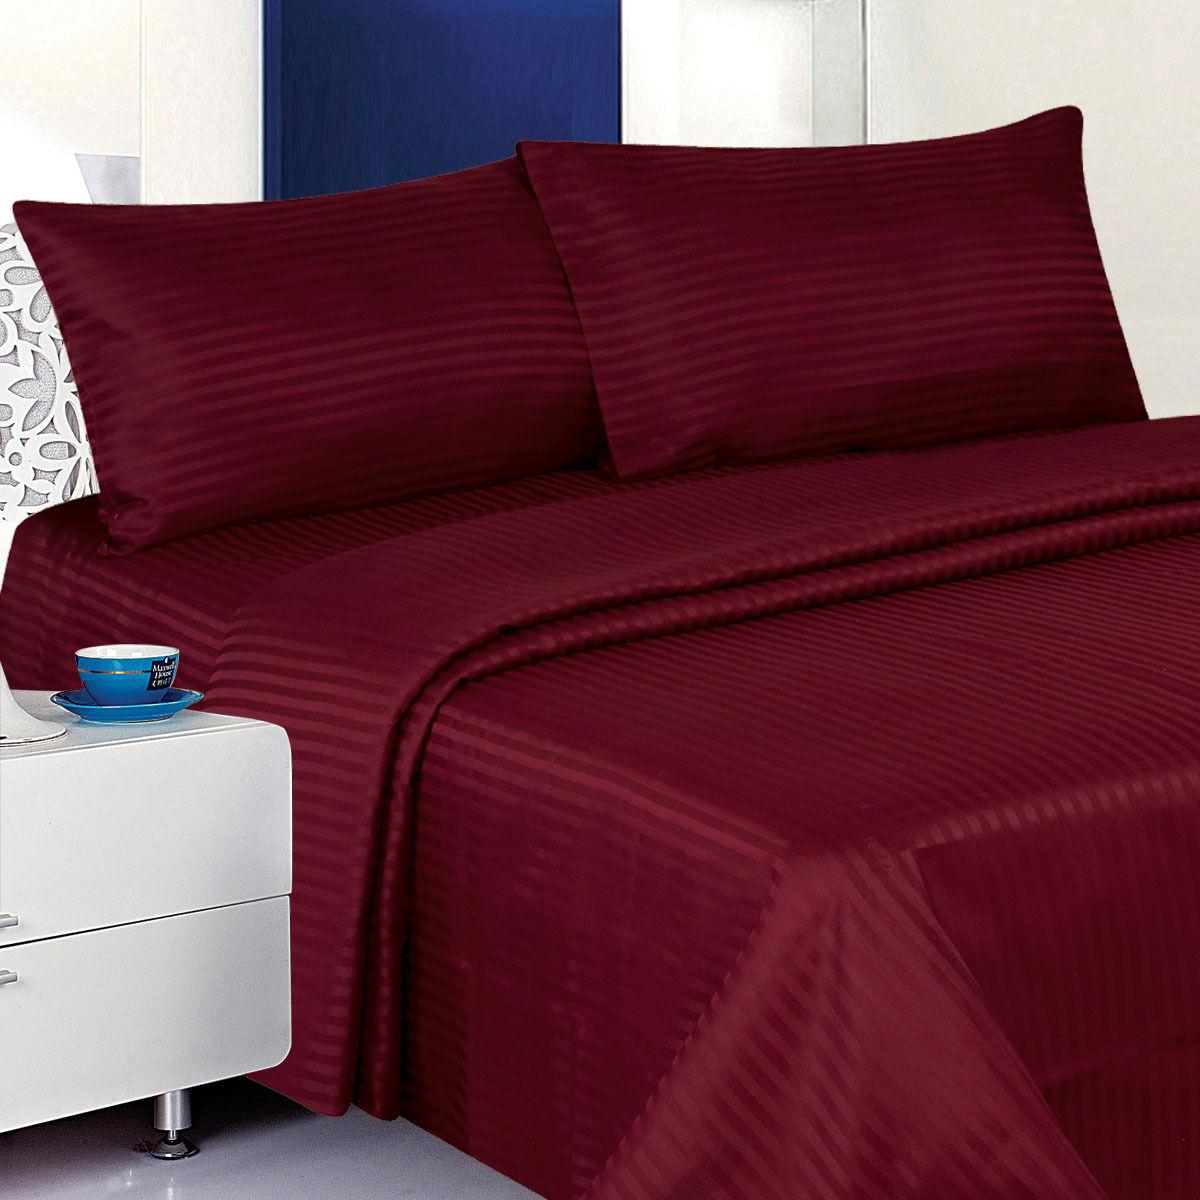 1800 4 Piece Bed Set Twin-Full-Queen-King